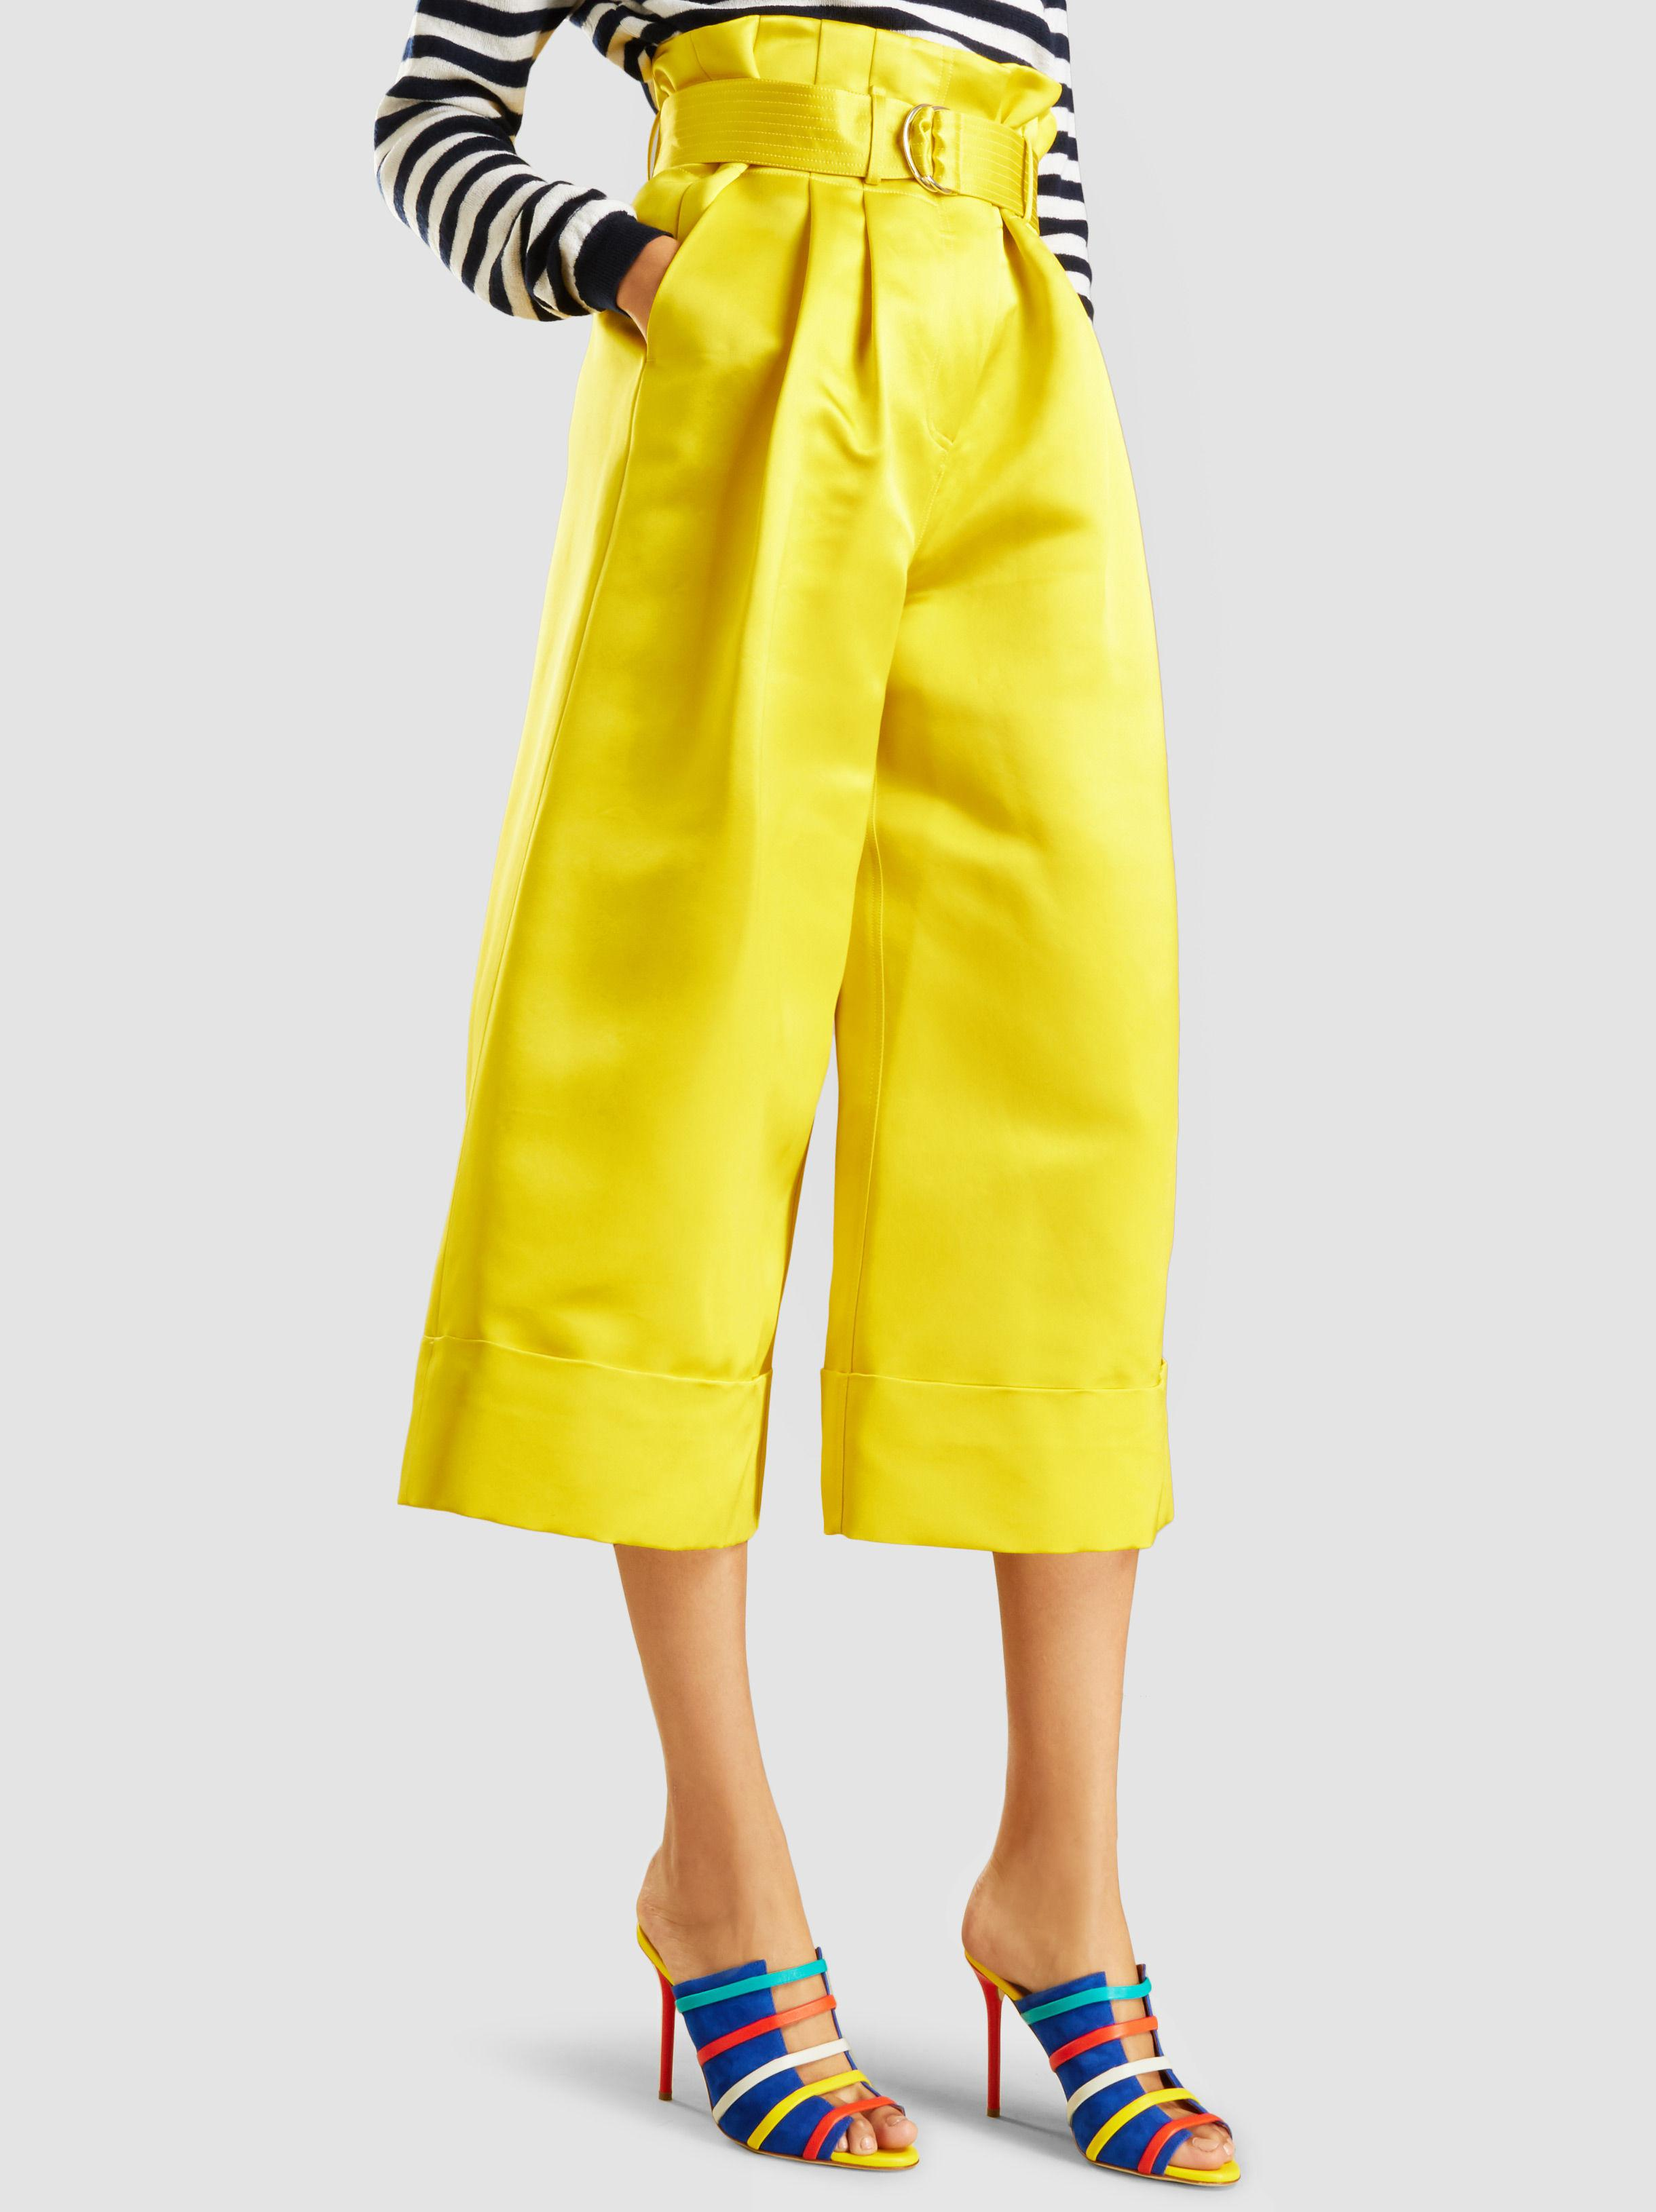 Free Shipping New Arrival Sale Many Kinds Of Duchess Silk-Satin Culottes Adam Lippes Cheap Sale Huge Surprise Clearance Shop For Sale Cheapest heUs1YvssJ